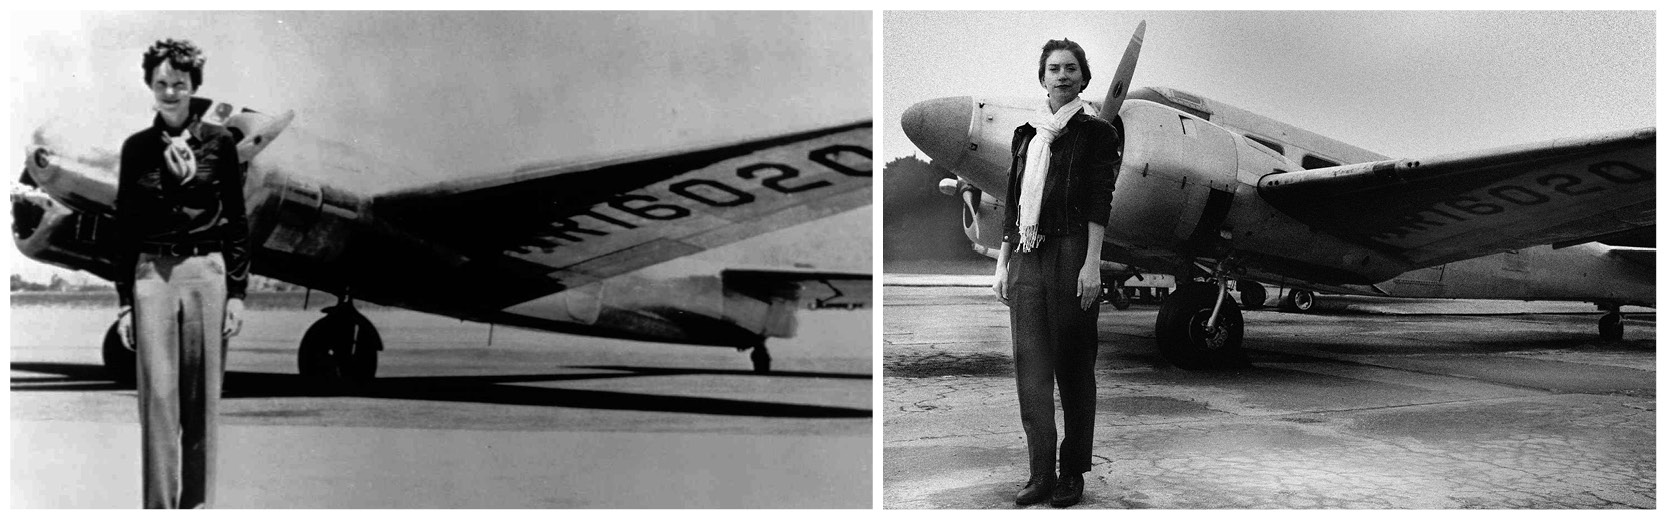 Before and after photo comparison Amelia Earhart Halloween costume and photo replica